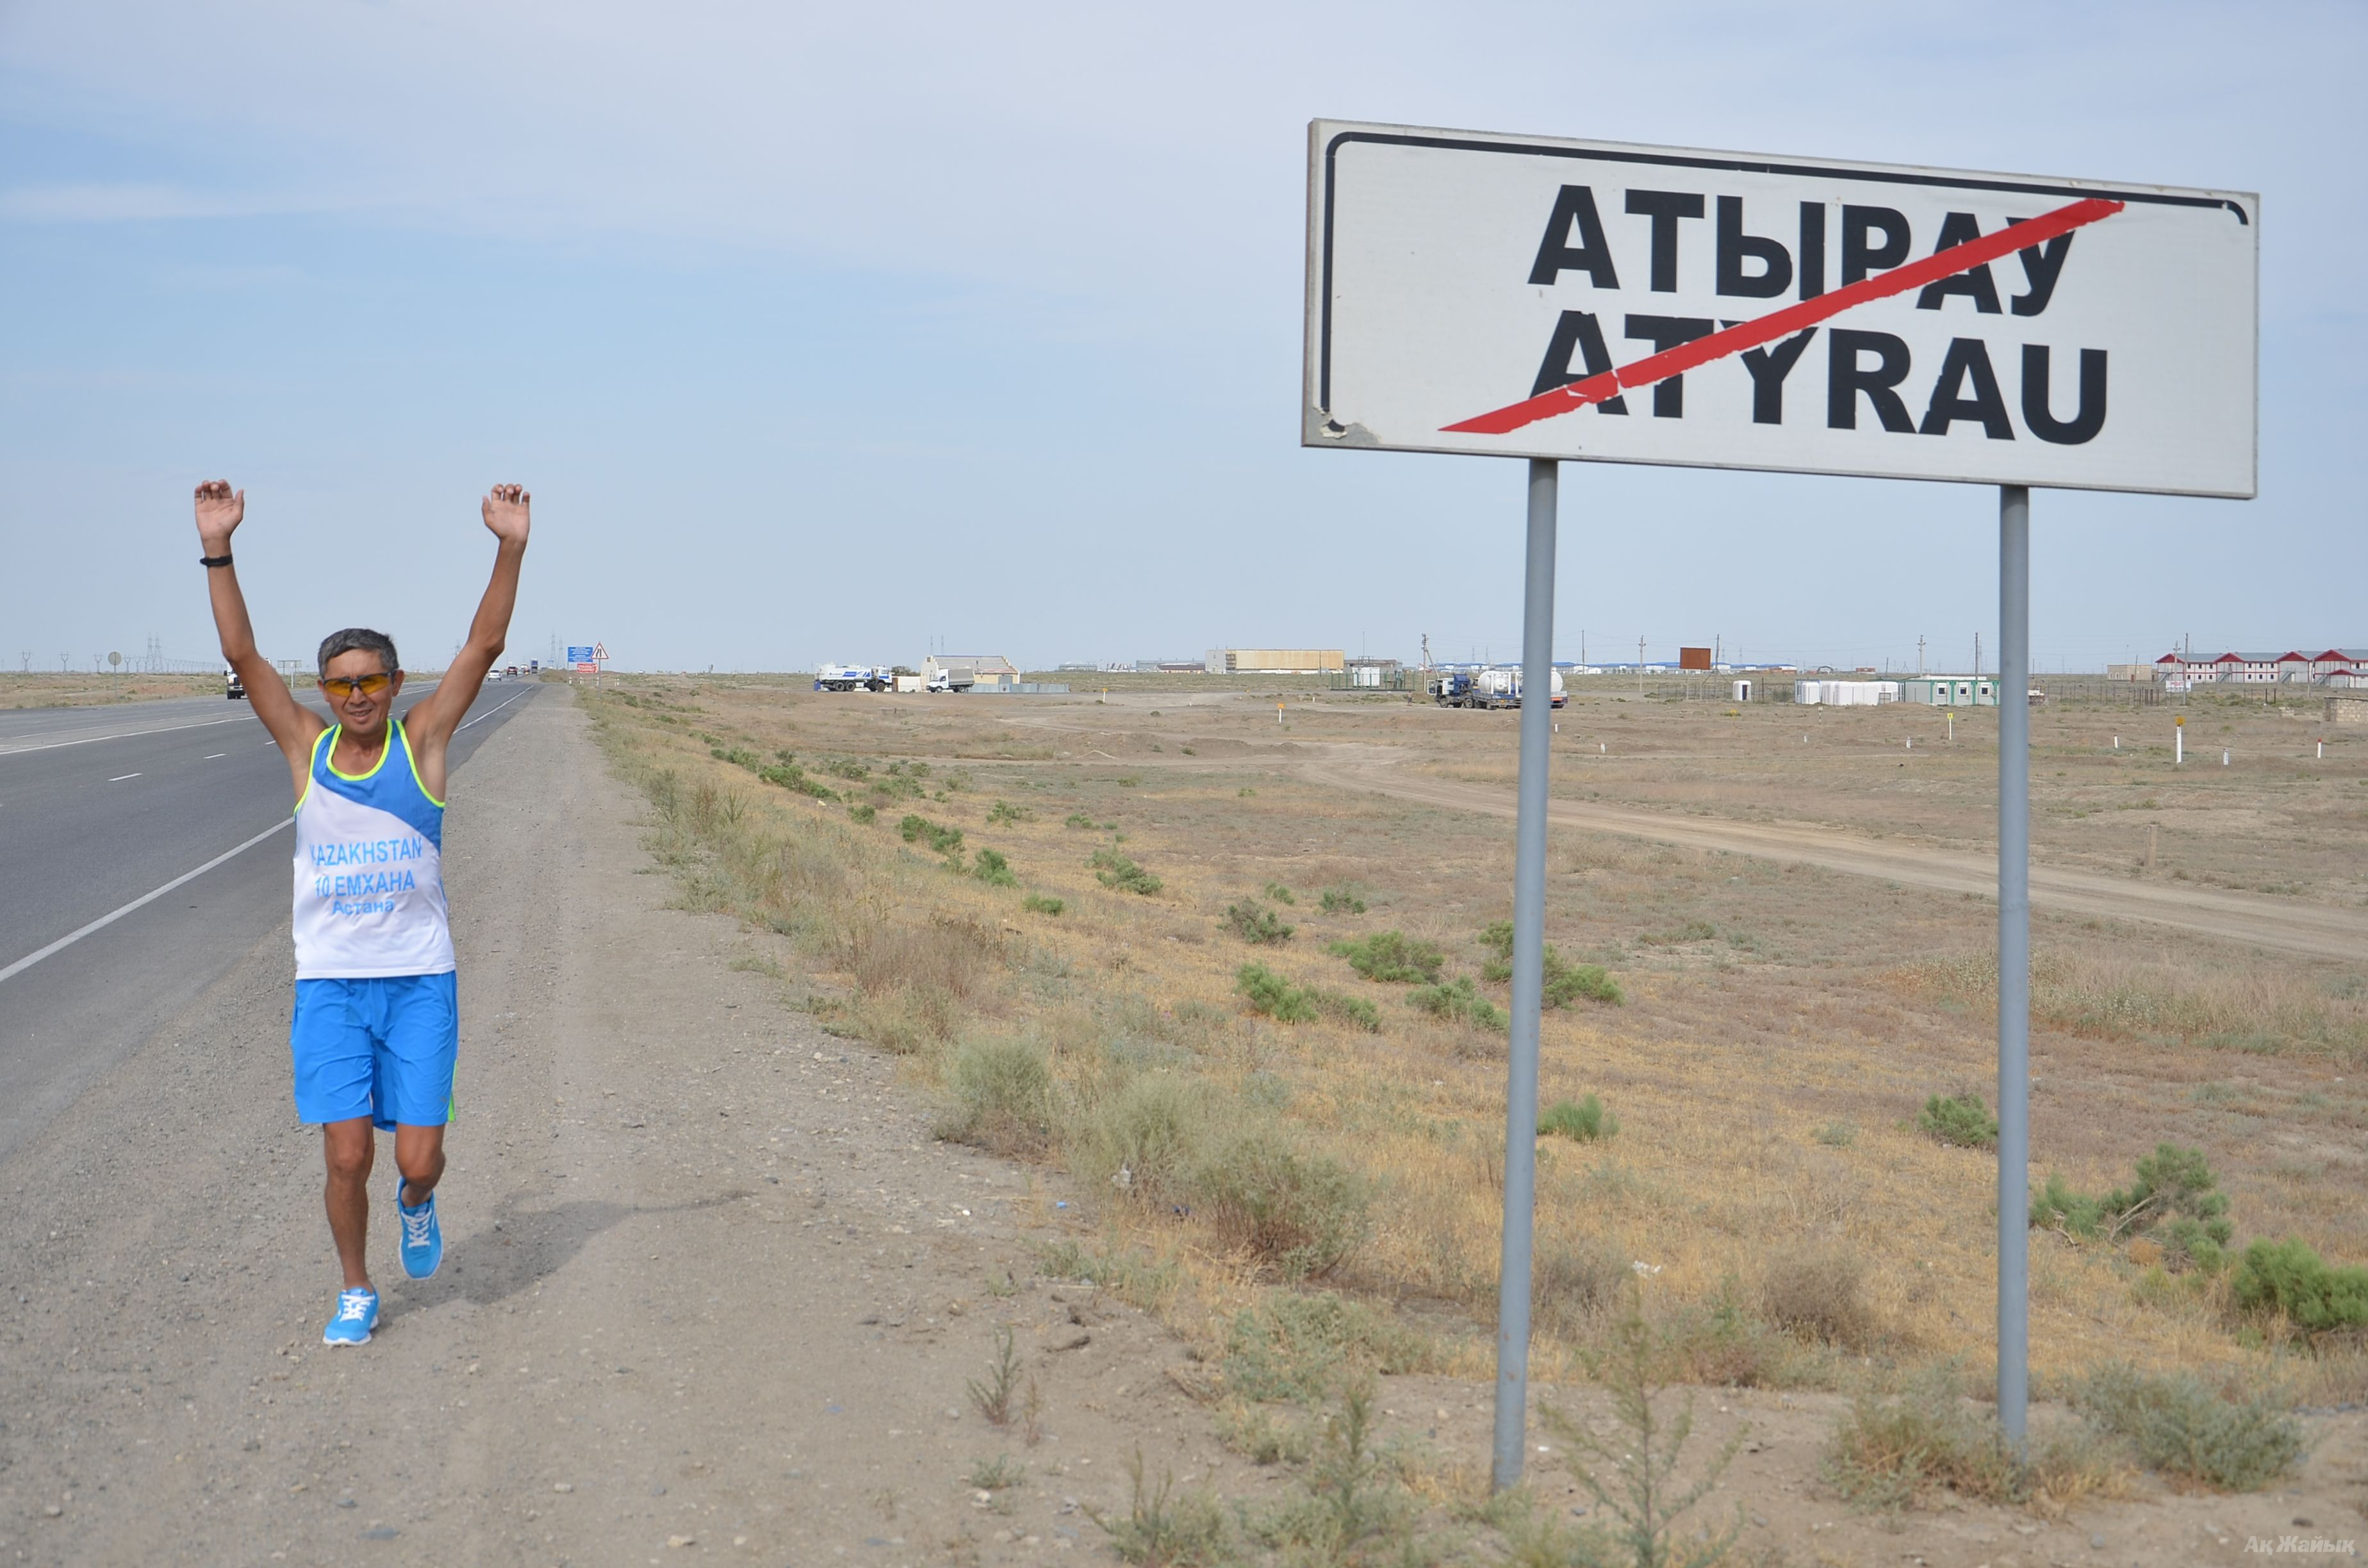 On his run to Mecca Dulat Imankazhy reached Atyrau on July 25, 2014